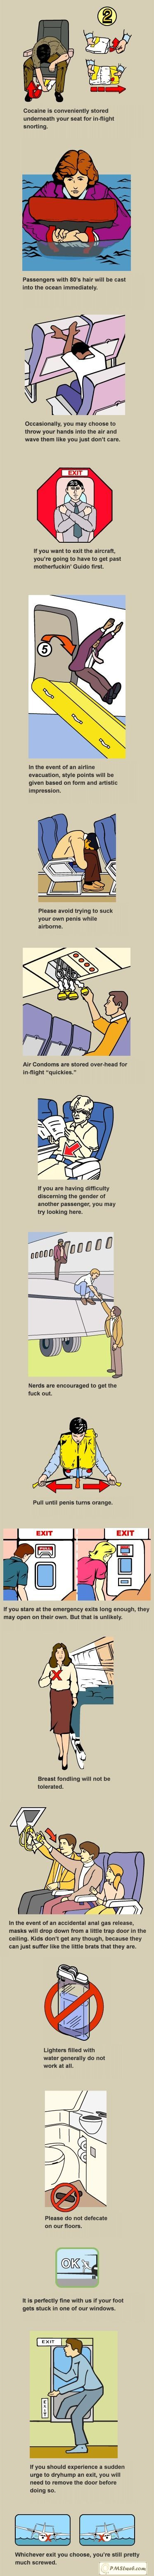 Plane safety card humor